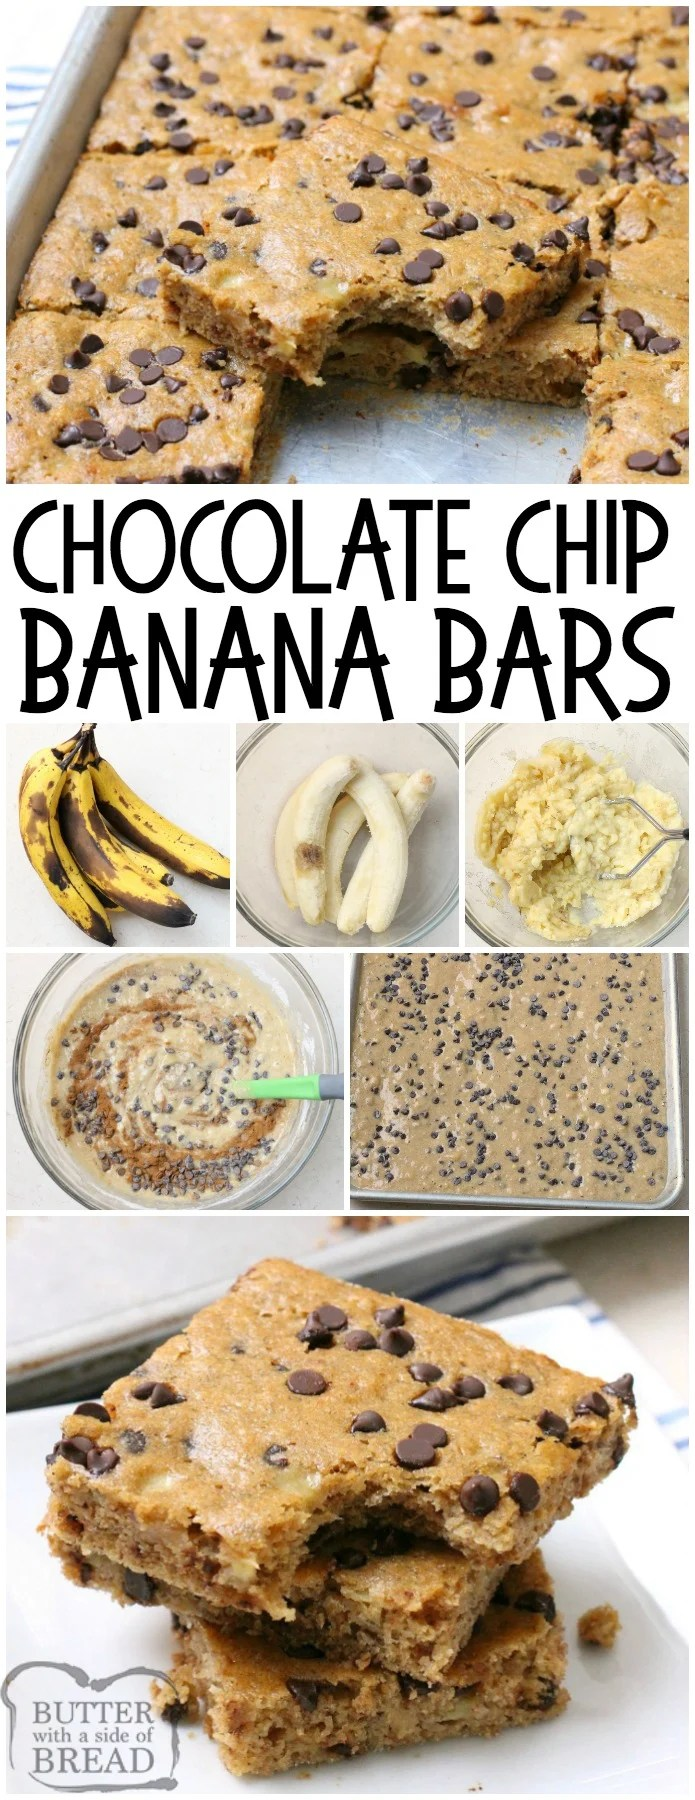 Chocolate Chip Banana Bars are a simple & delicious ripe banana recipe that's even better than banana bread! Great for breakfast, lunch and even dessert! Check out all the 5 star reviews- everyone raves about this easy banana recipe!